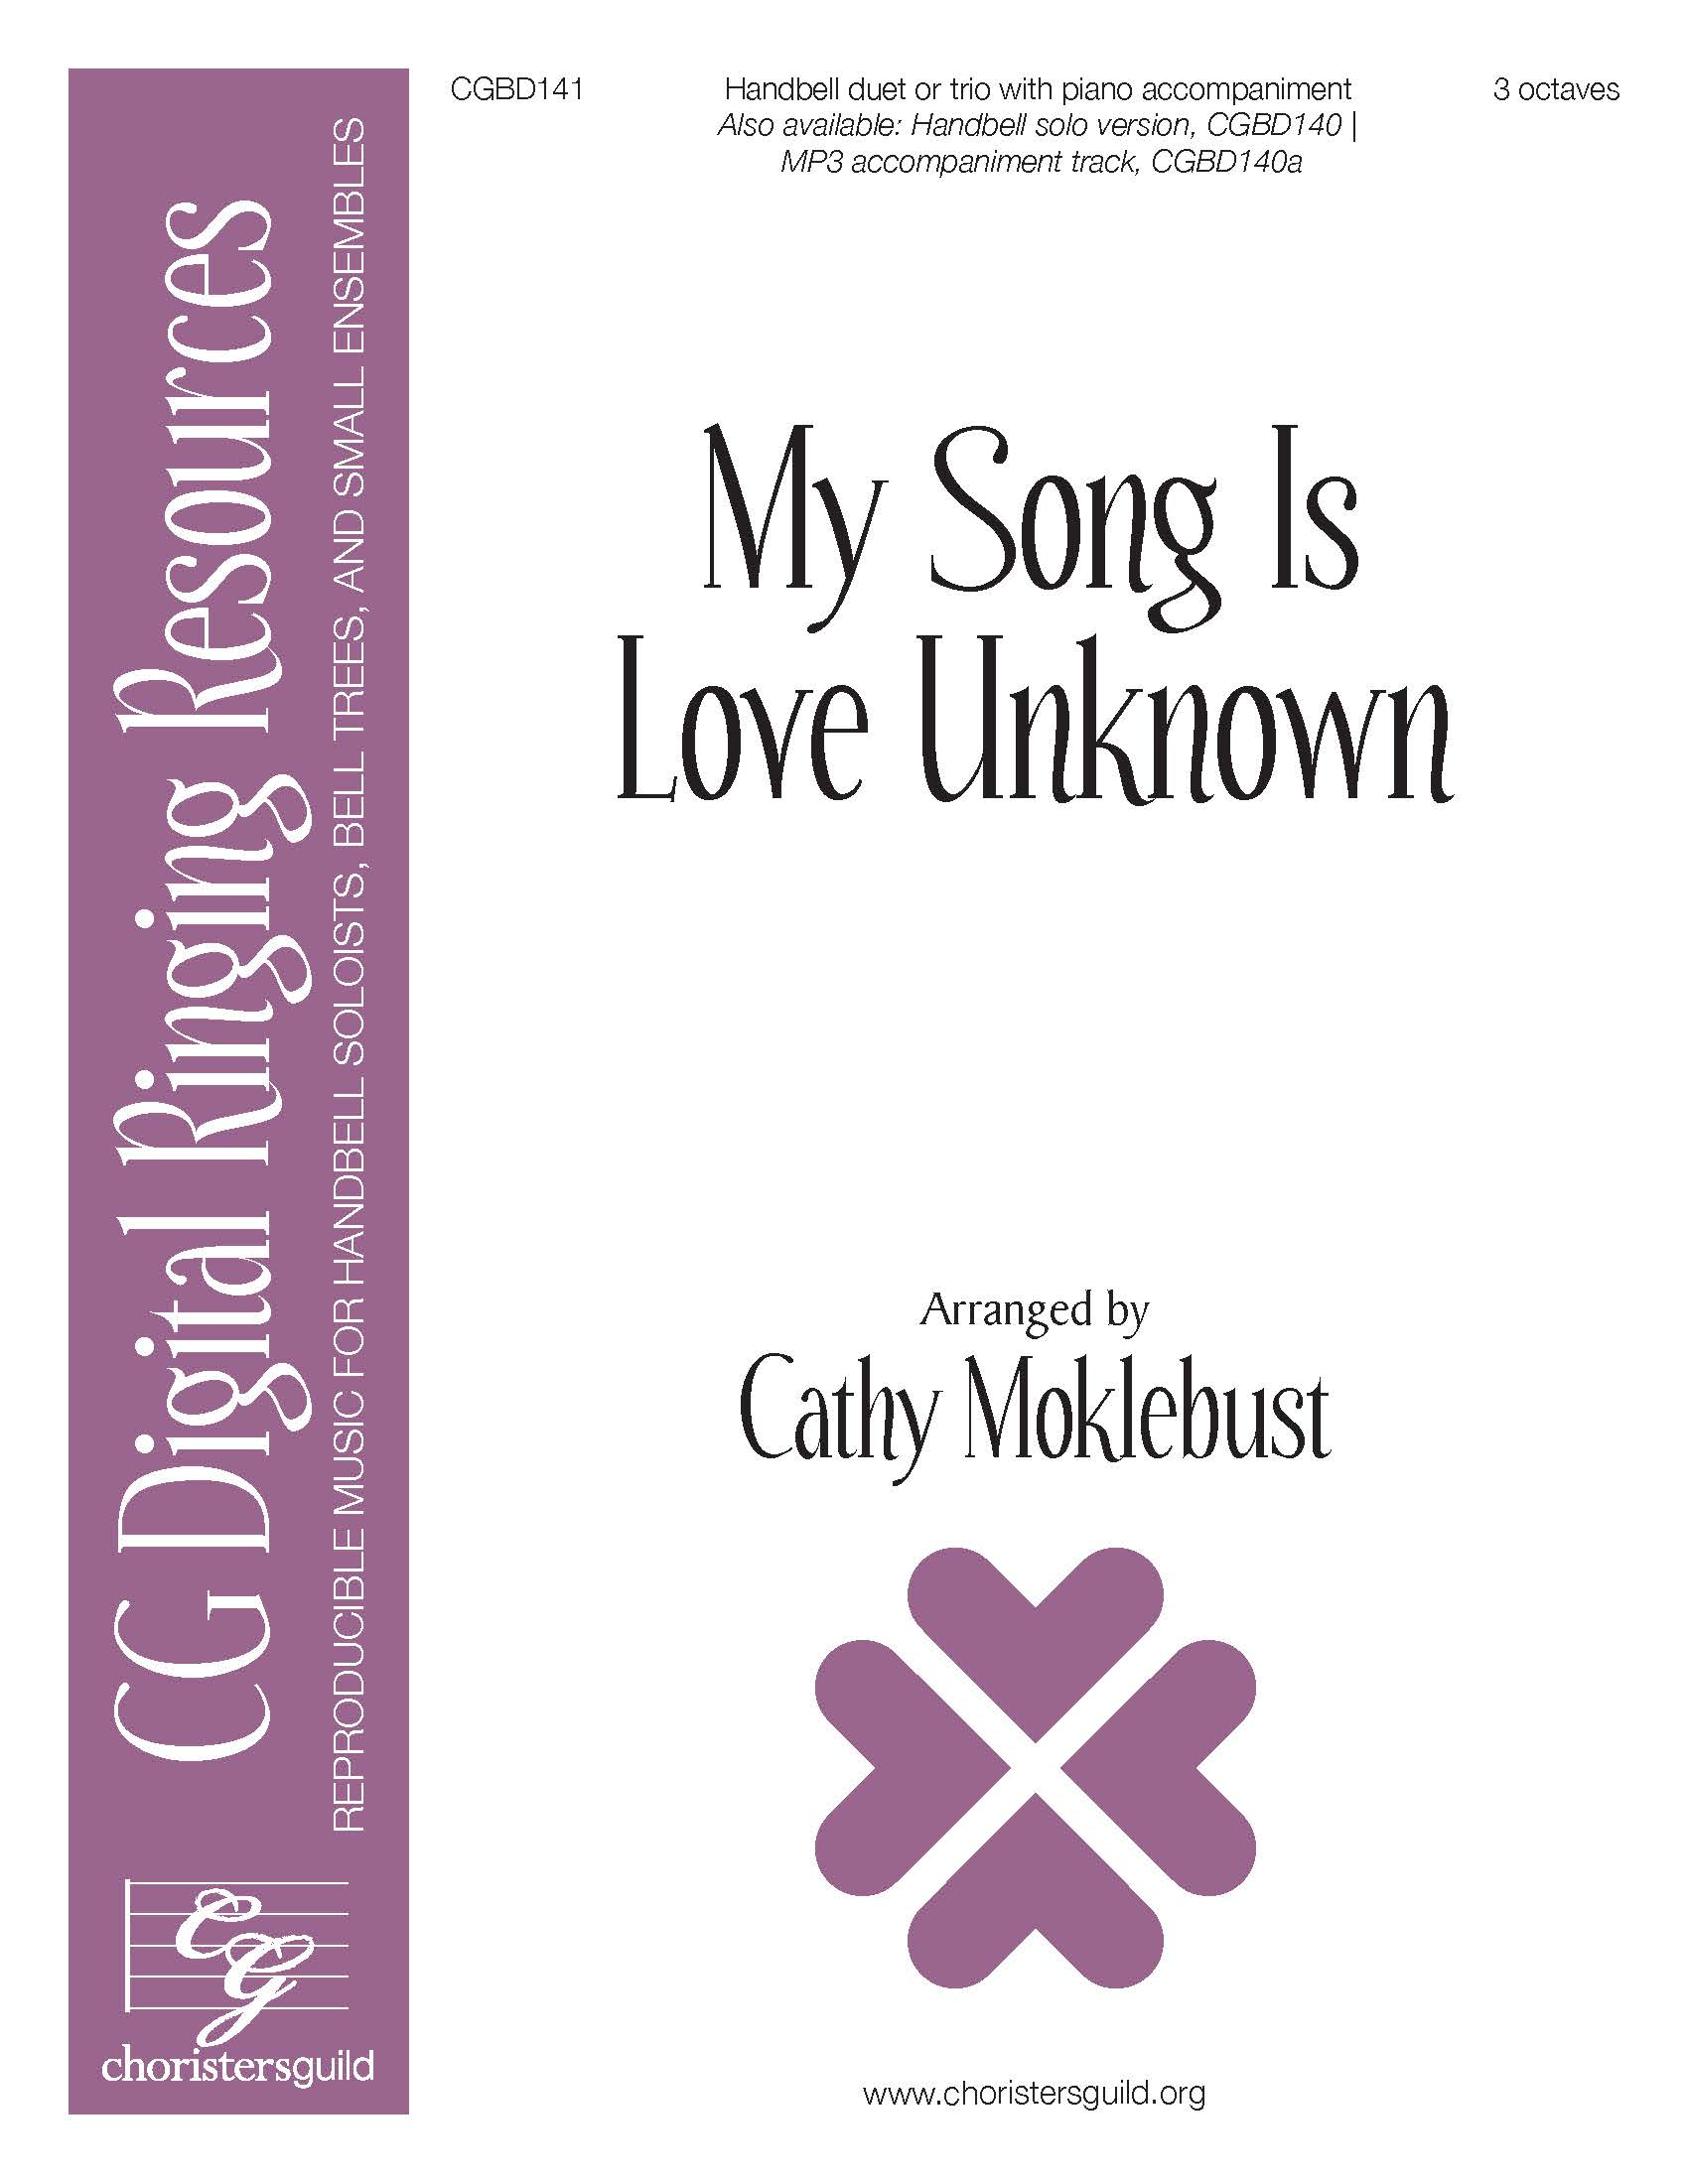 My Song is Love Unknown - Duet or Trio (3 octaves)